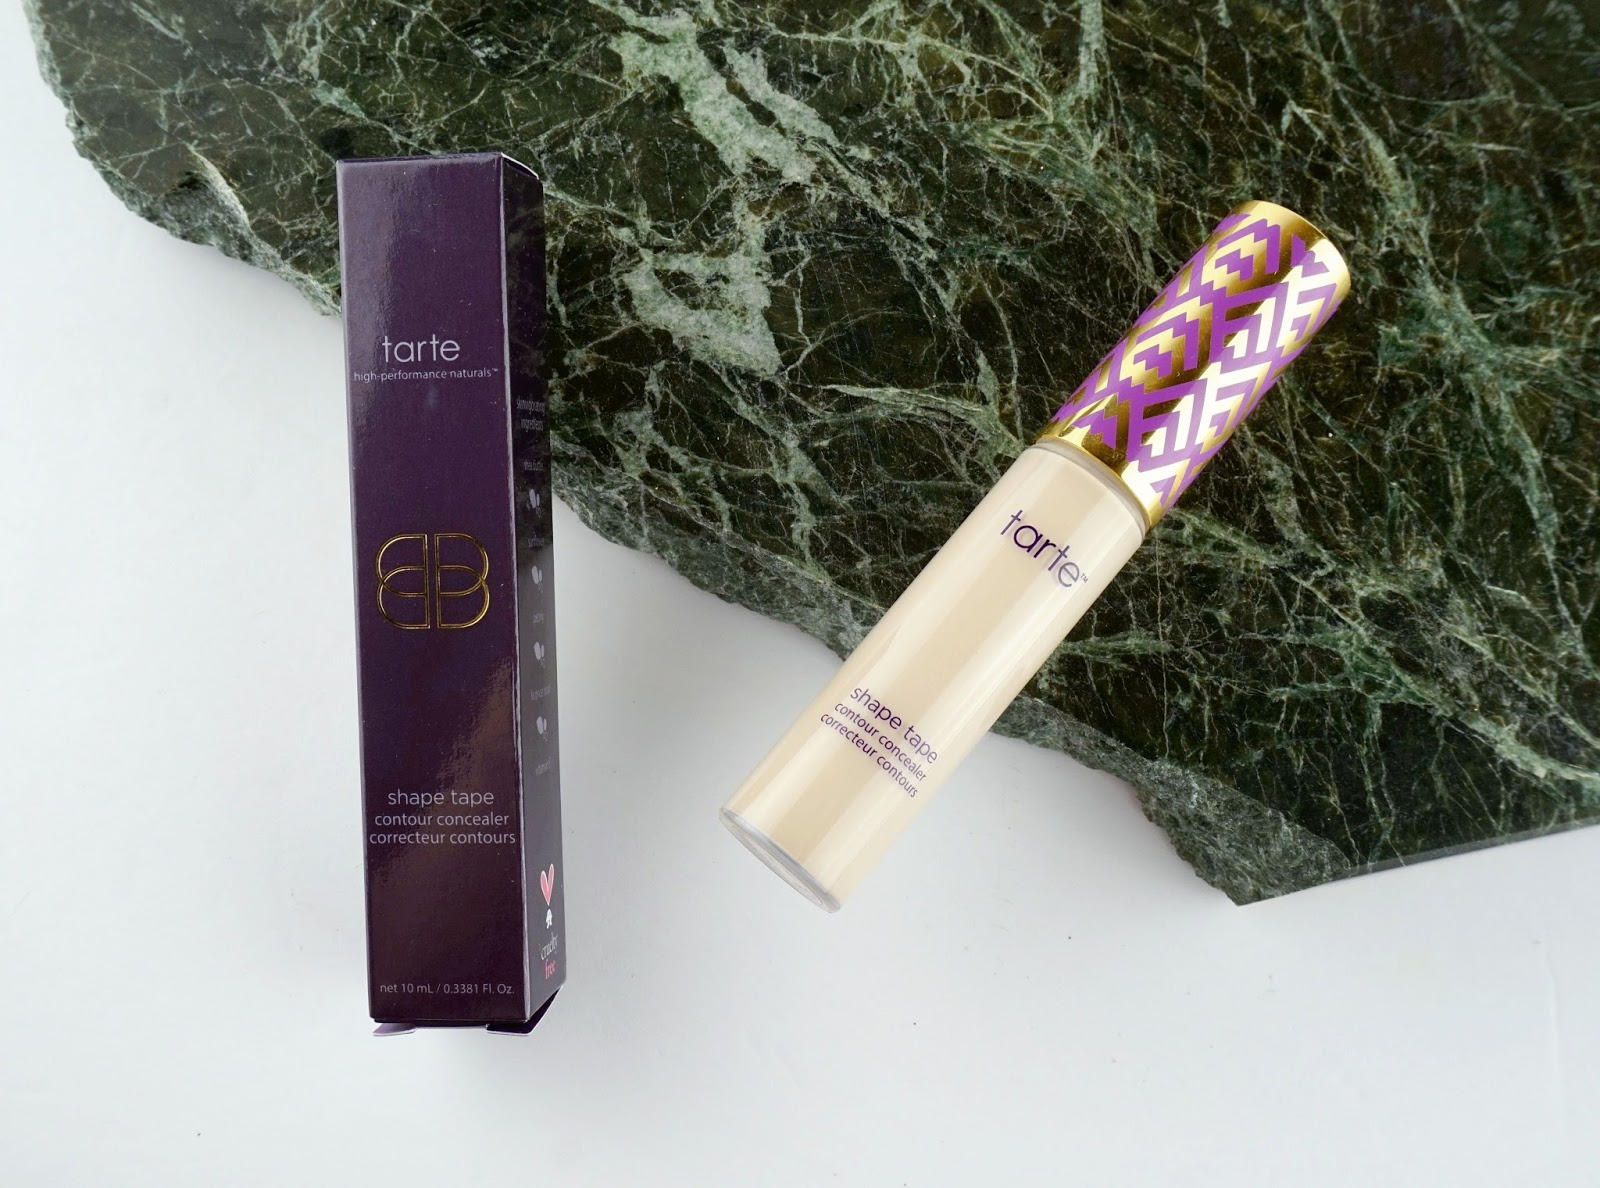 Tarte Shape Tape Contour Concealer fair Review Comparison Swatches Before and After